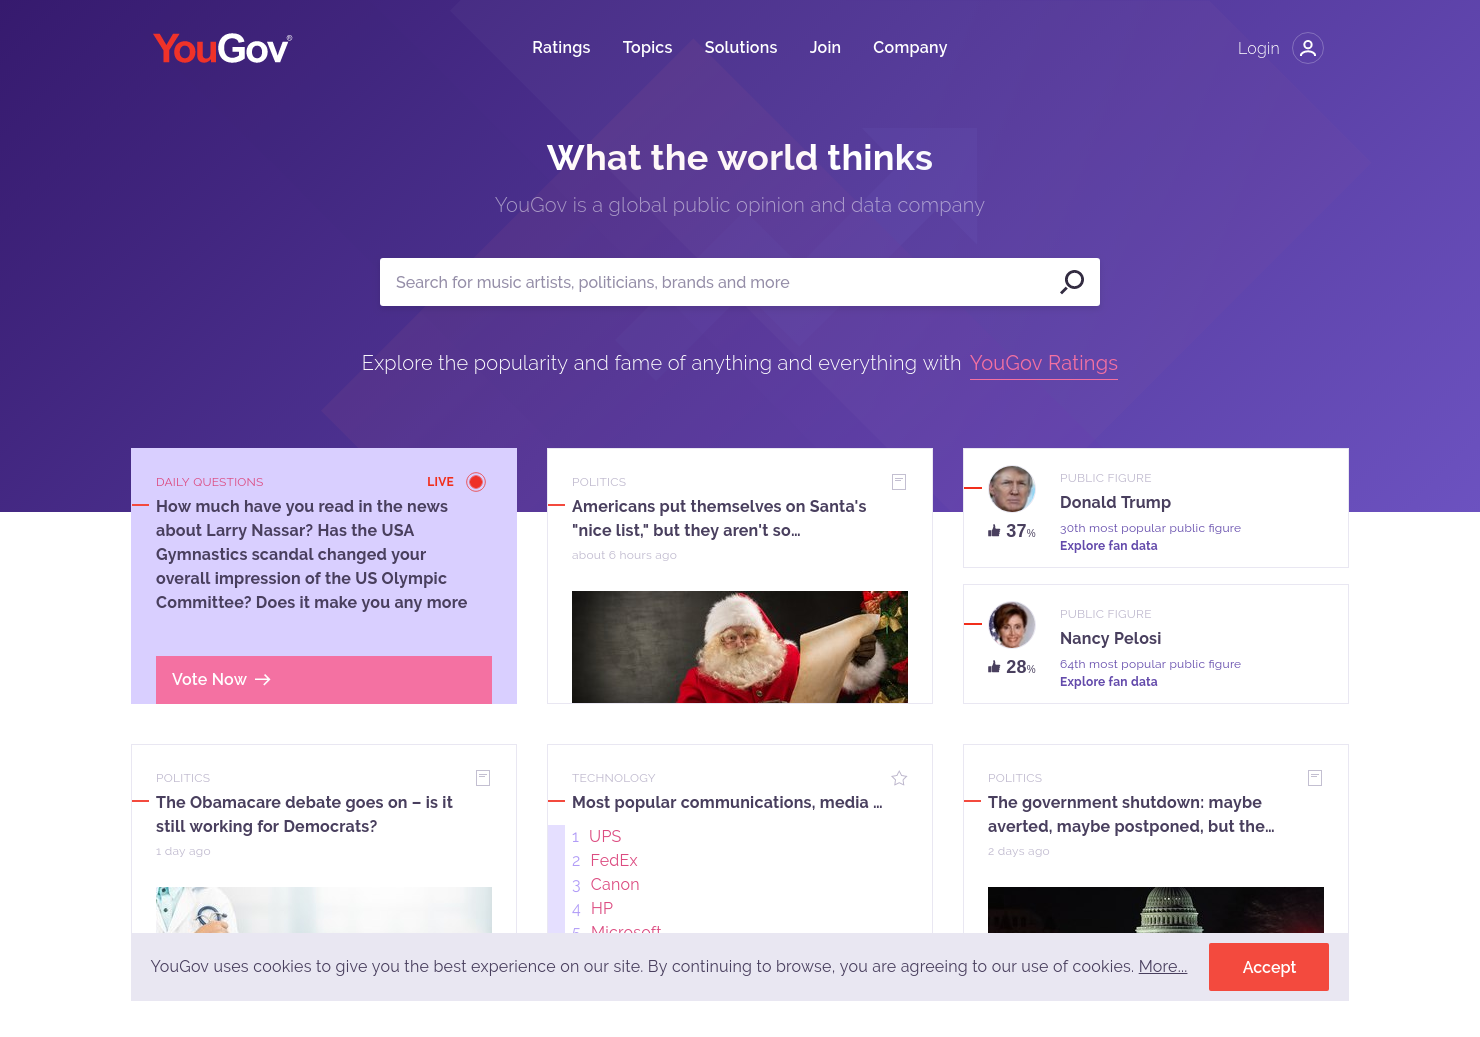 YouGov Home Page